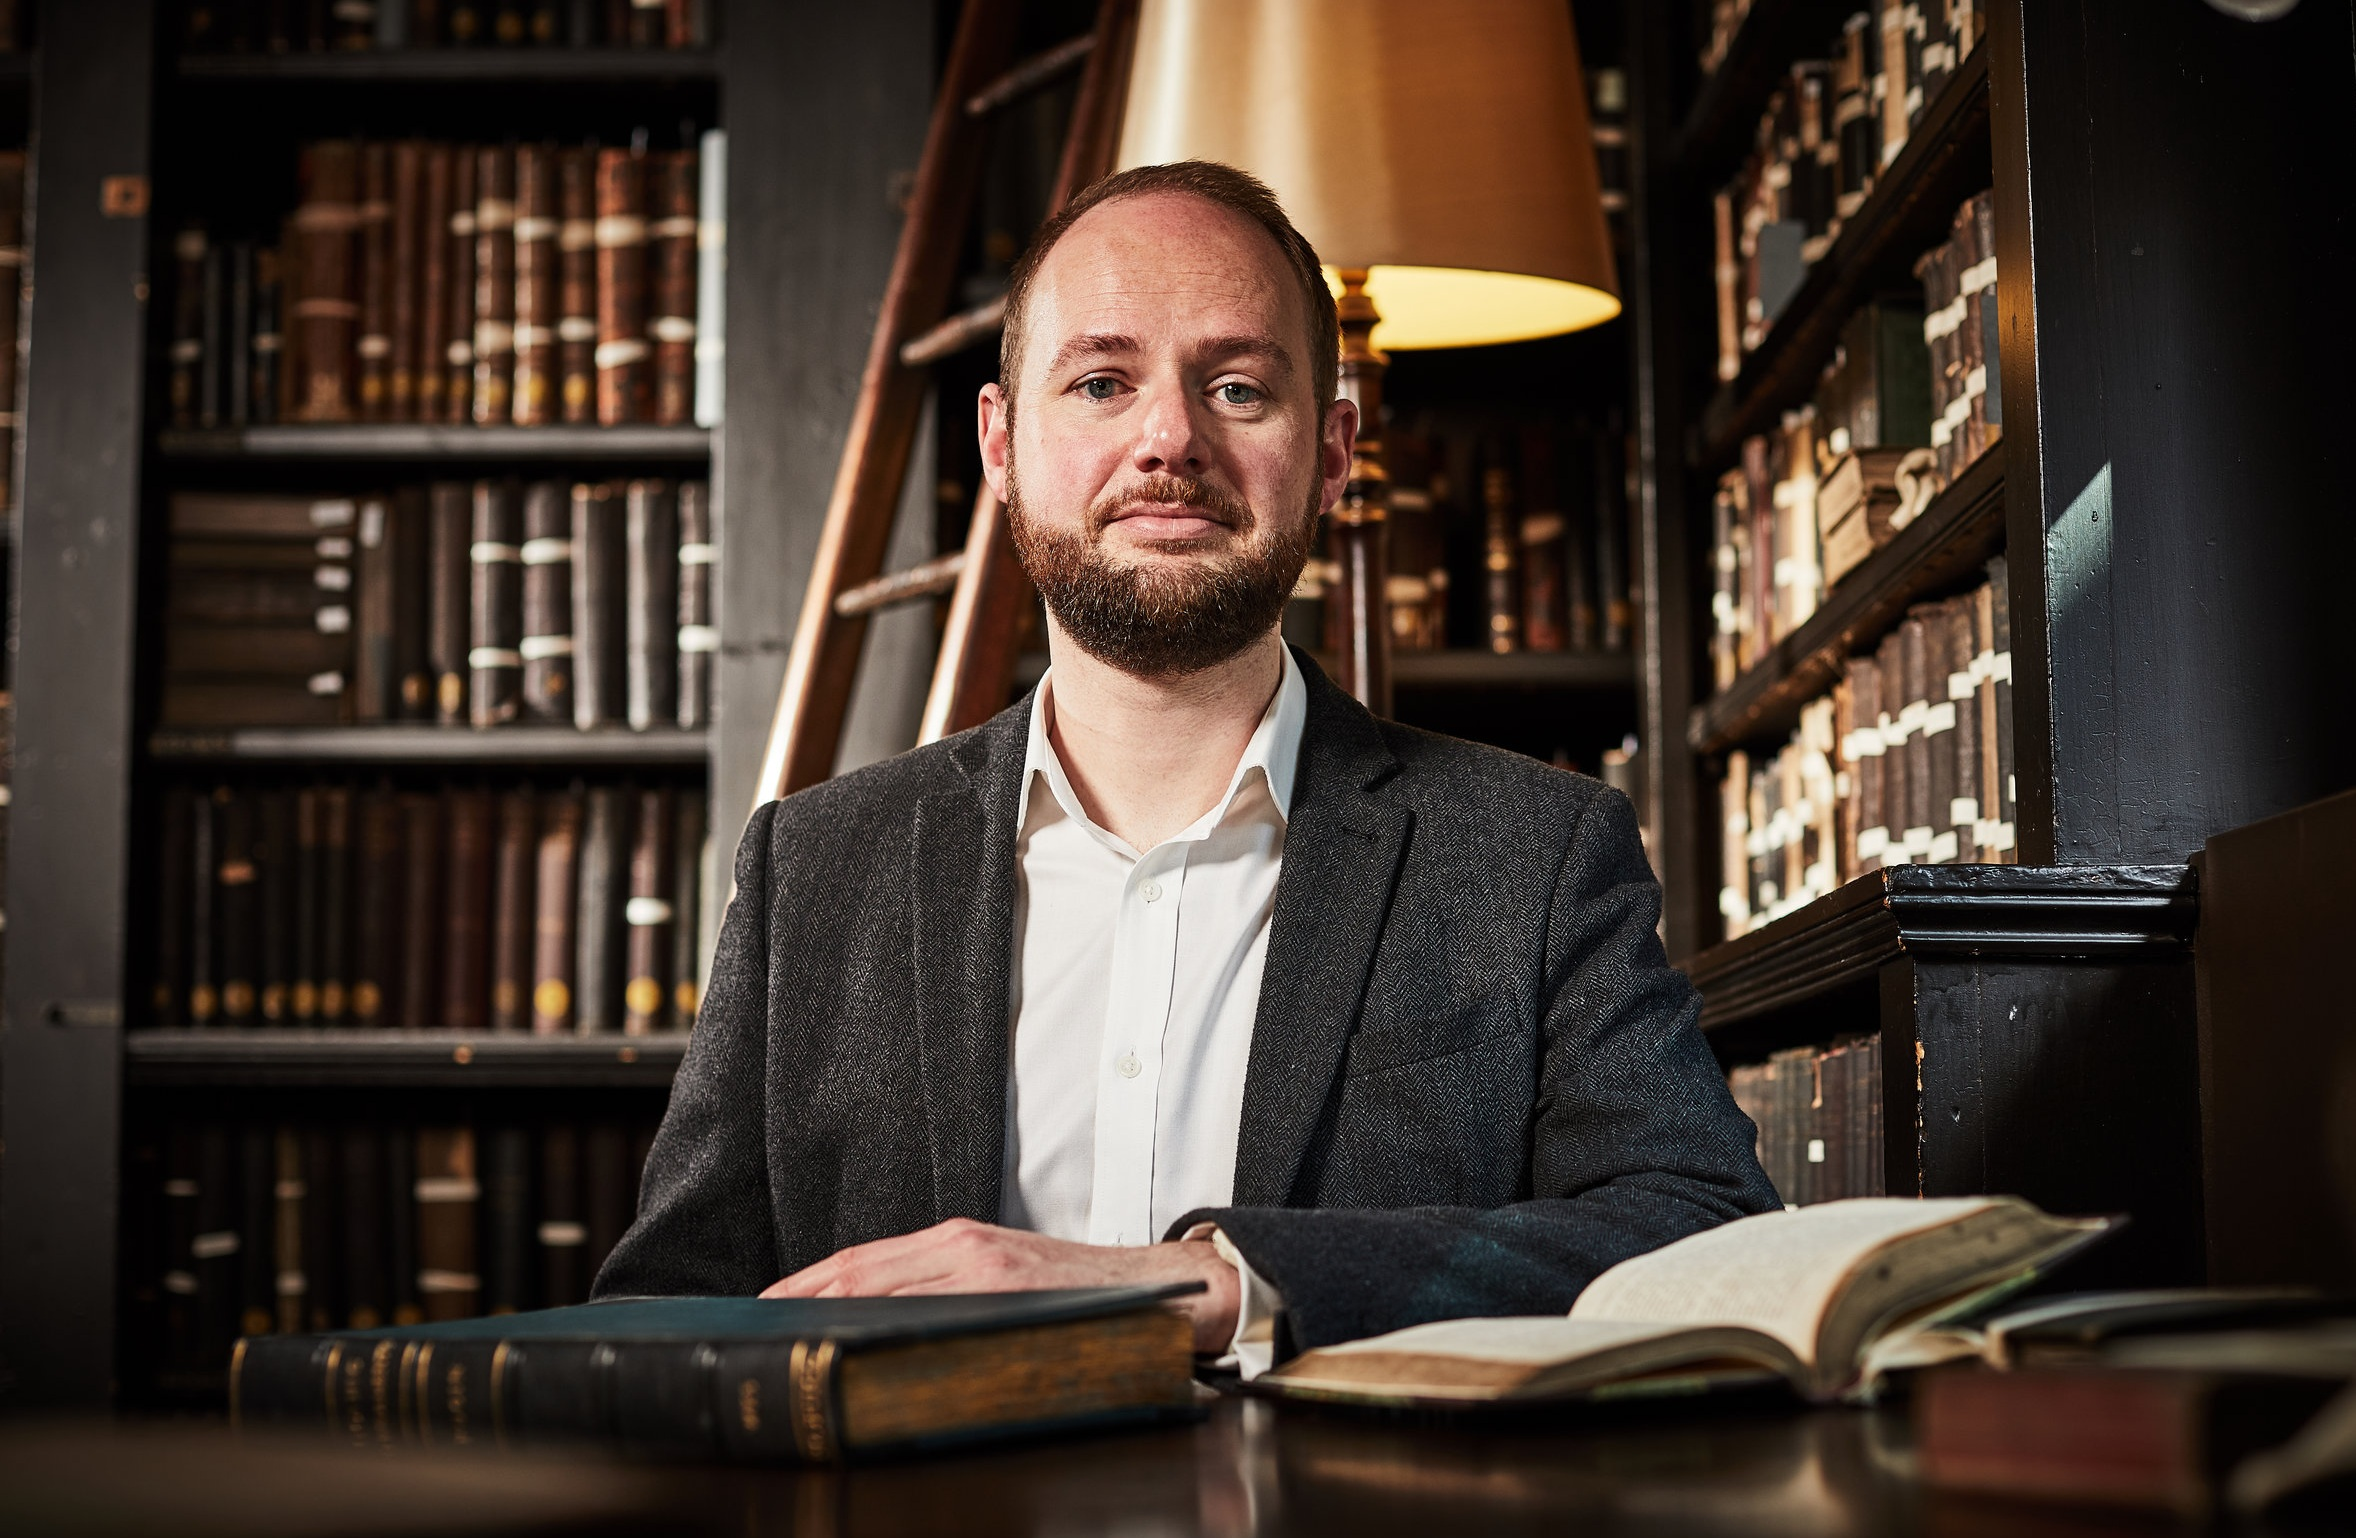 Steve Slack - Steve is a writer and heritage interpretation consultant. He lives in the city centre and initially joined The Portico as a place to work and to be inspired by the historic collection. Steve has been a Trustee since 2018 and also chairs the Library's Exhibitions Committee.